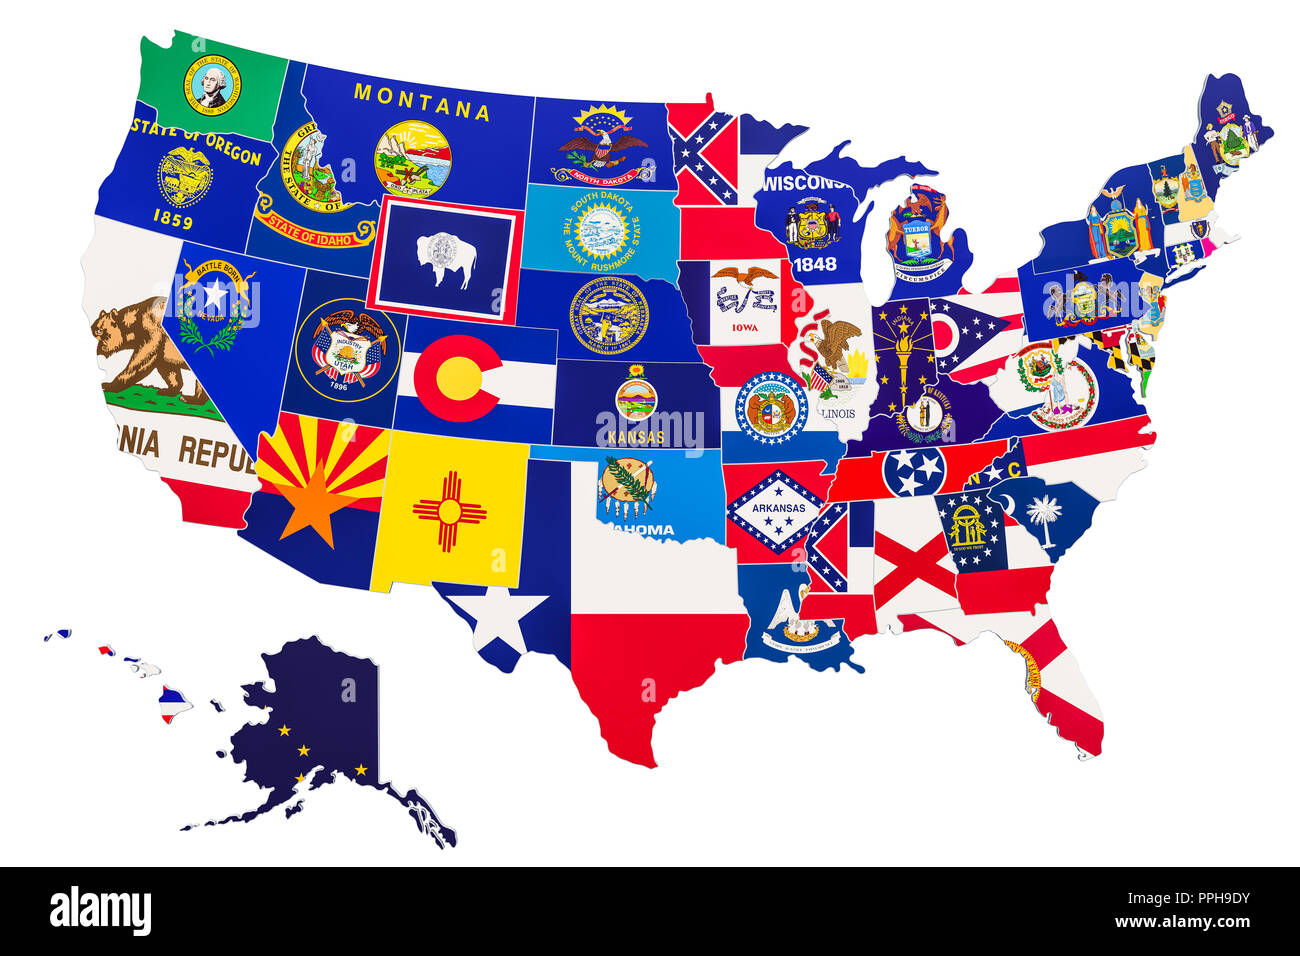 United States Of America Map Images.United States Of America Map With State Flags 3d Rendering Isolated